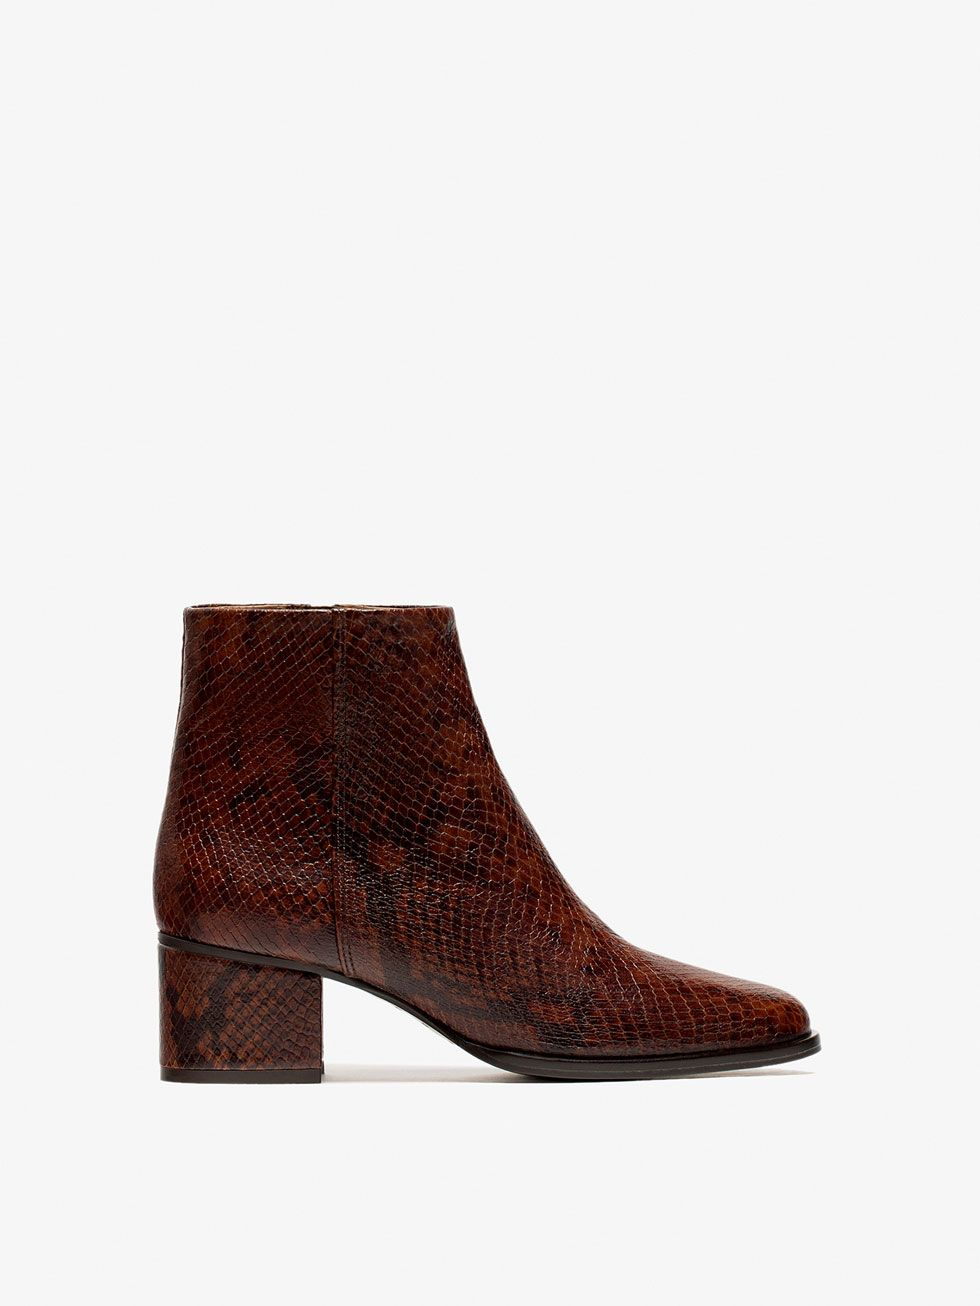 49ec2d99fd96 Autumn winter 2016 WOMEN´s ANIMAL PRINT ANKLE BOOTS at Massimo Dutti for  139. Effortless elegance!